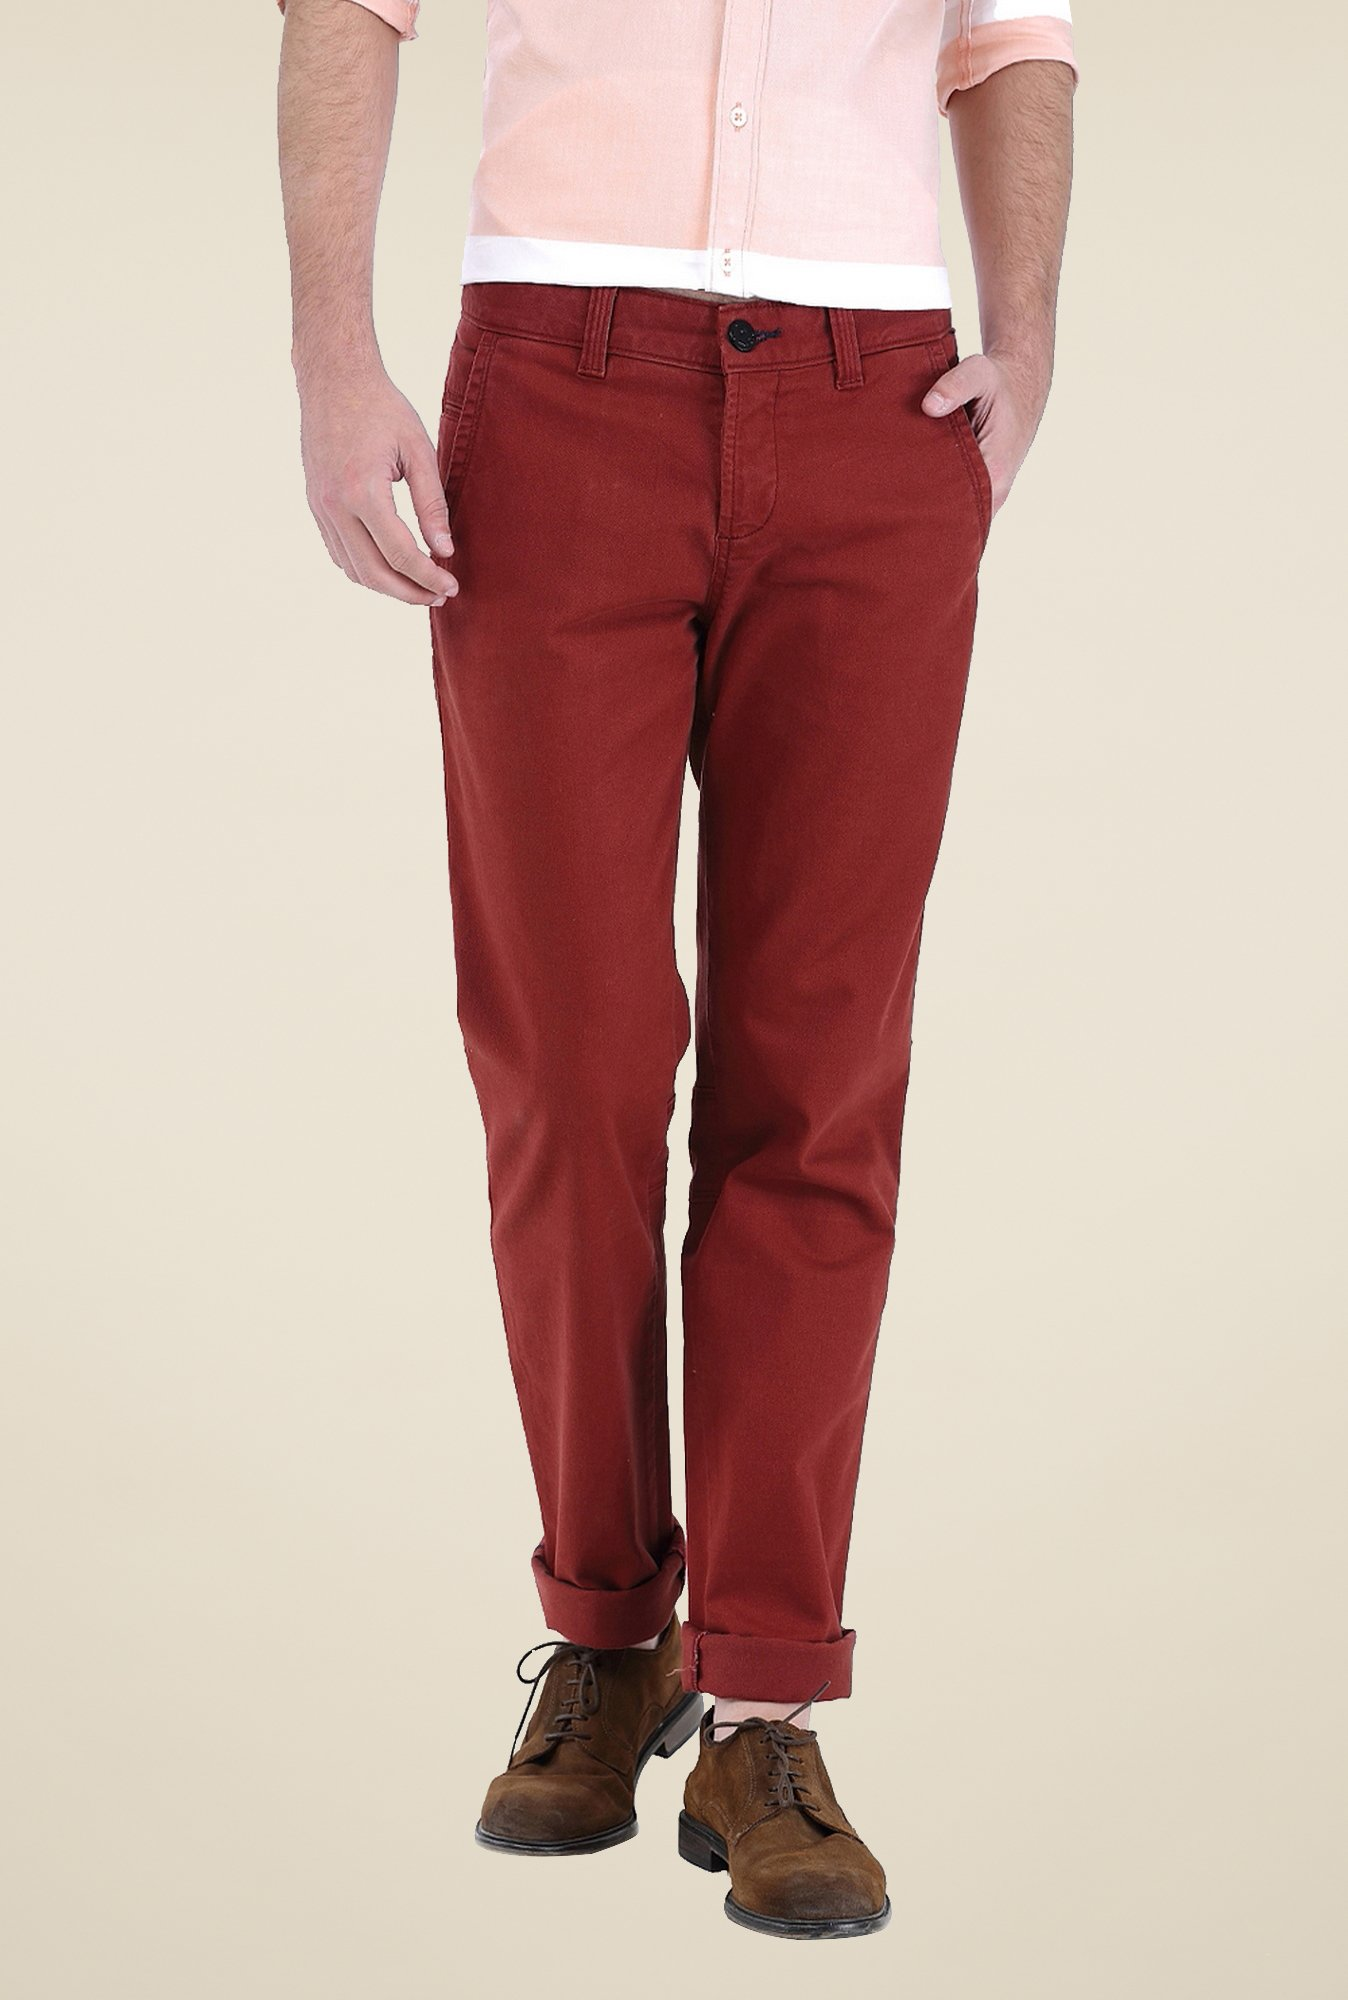 Basics Maroon Solid Trousers